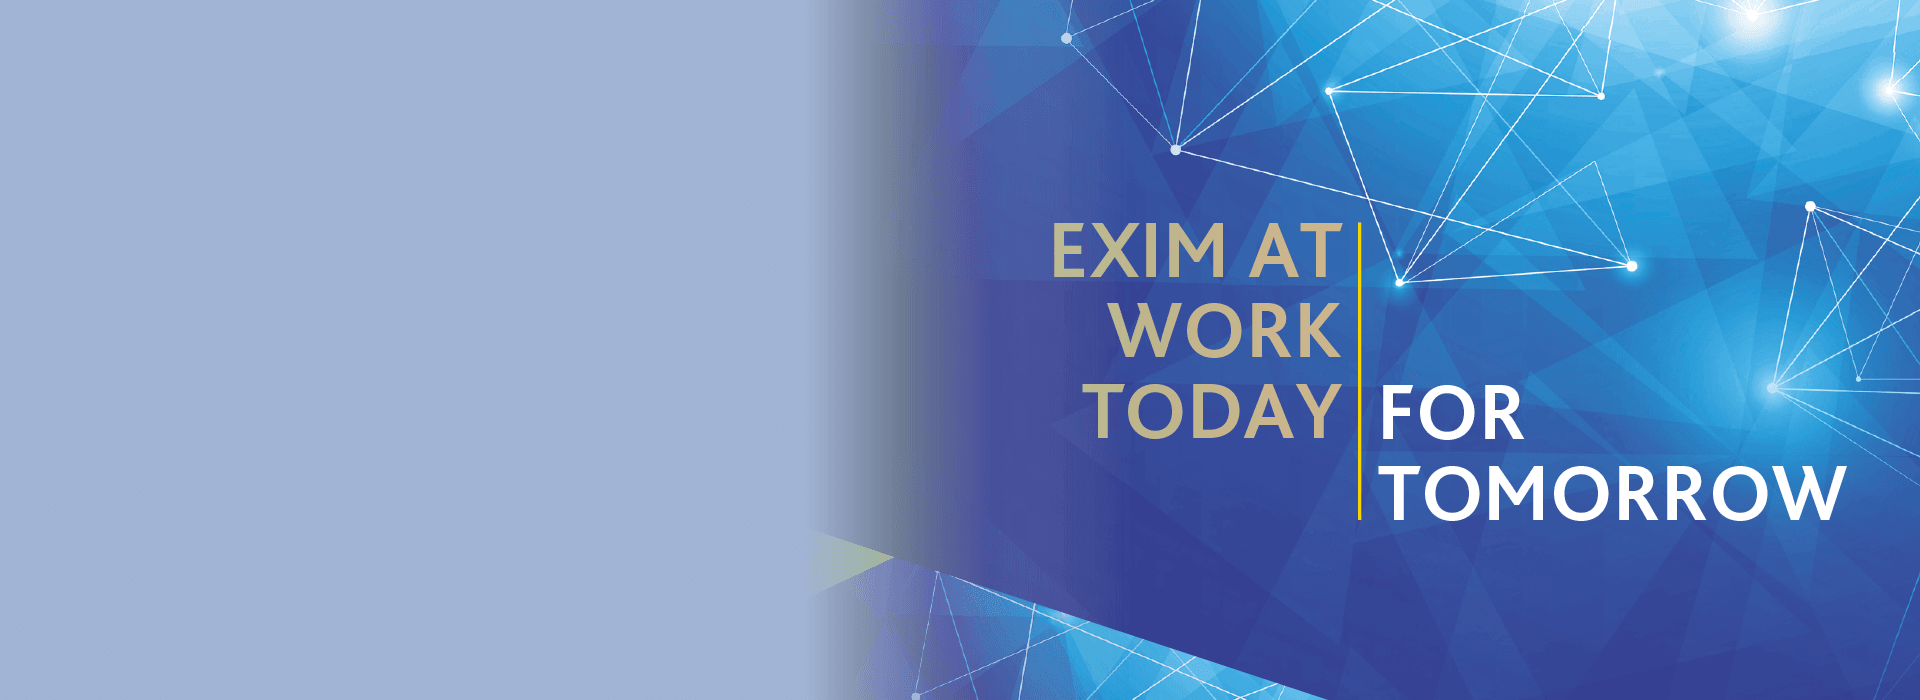 Exim at work | Today for Tomorrow